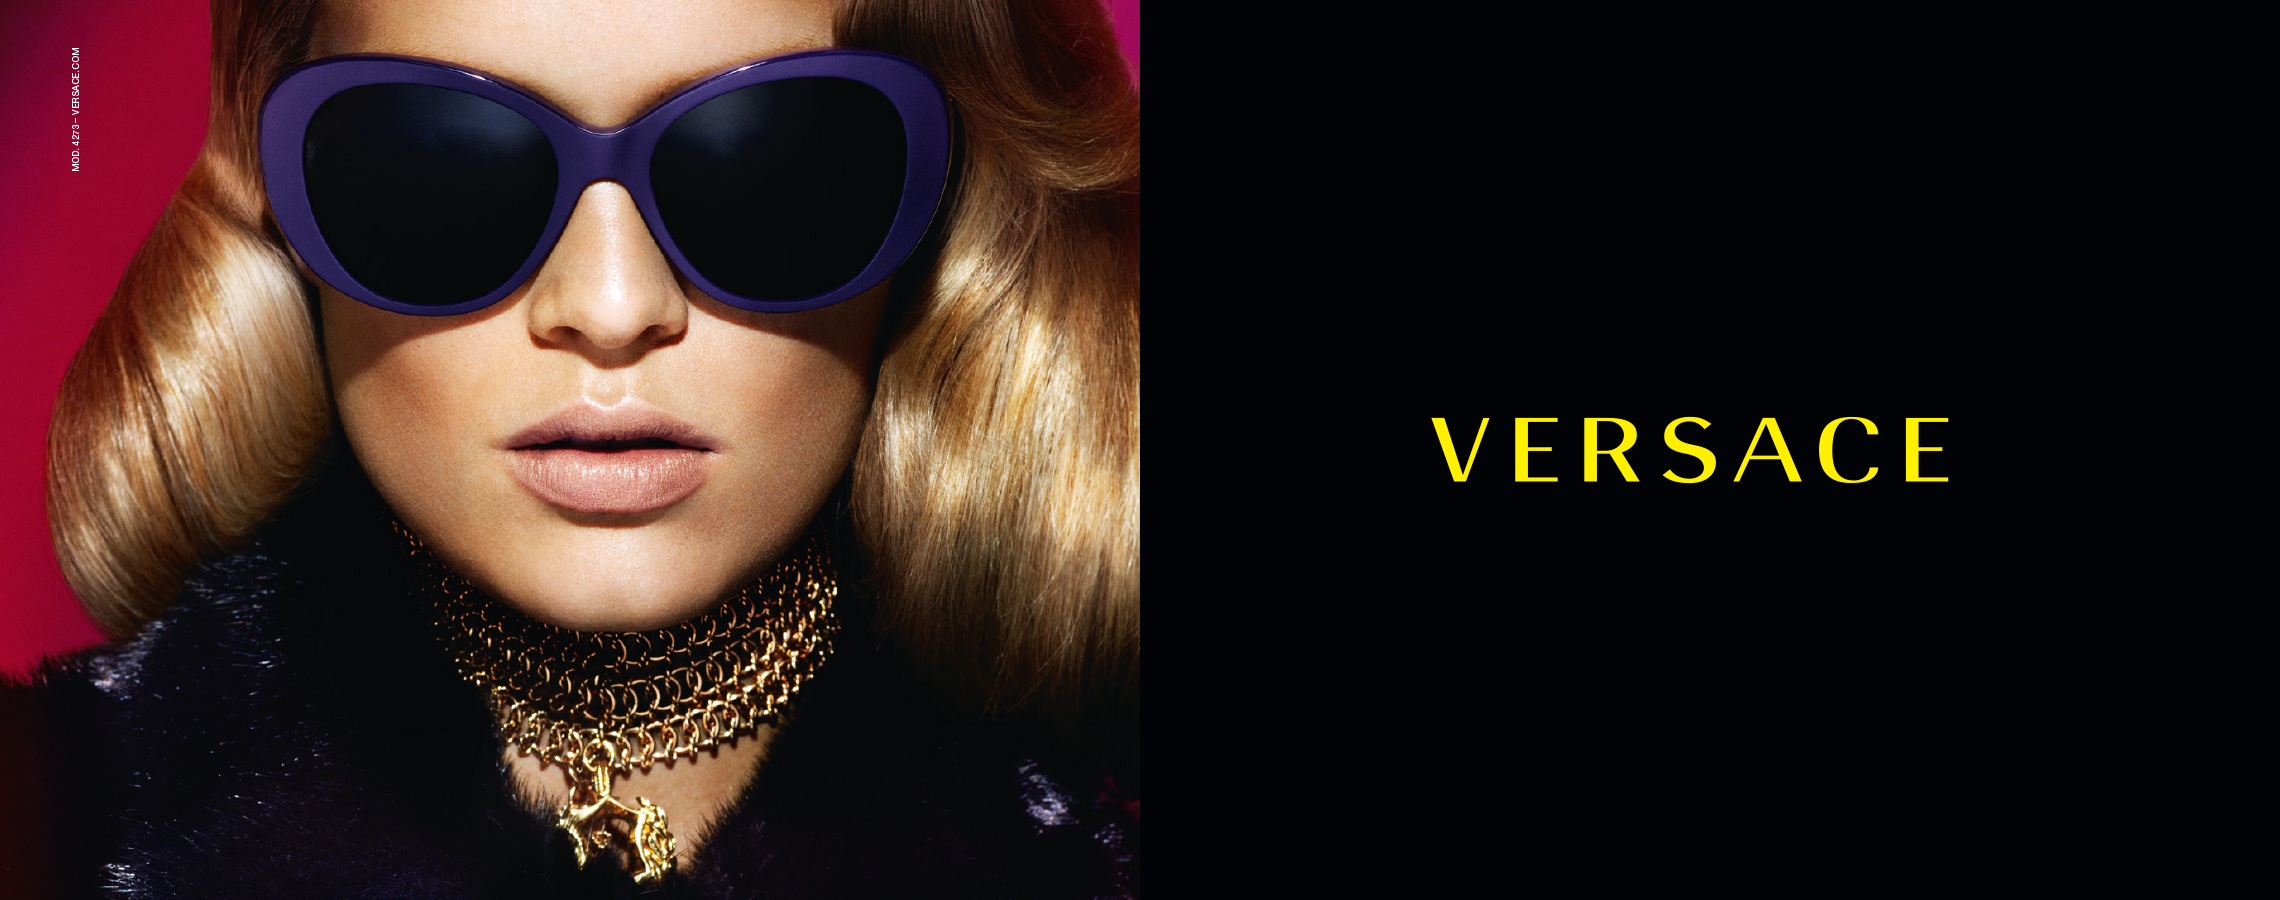 15858fd3906a Kate Grigorieva for Versace Eyewear fall winter 2015 campaign